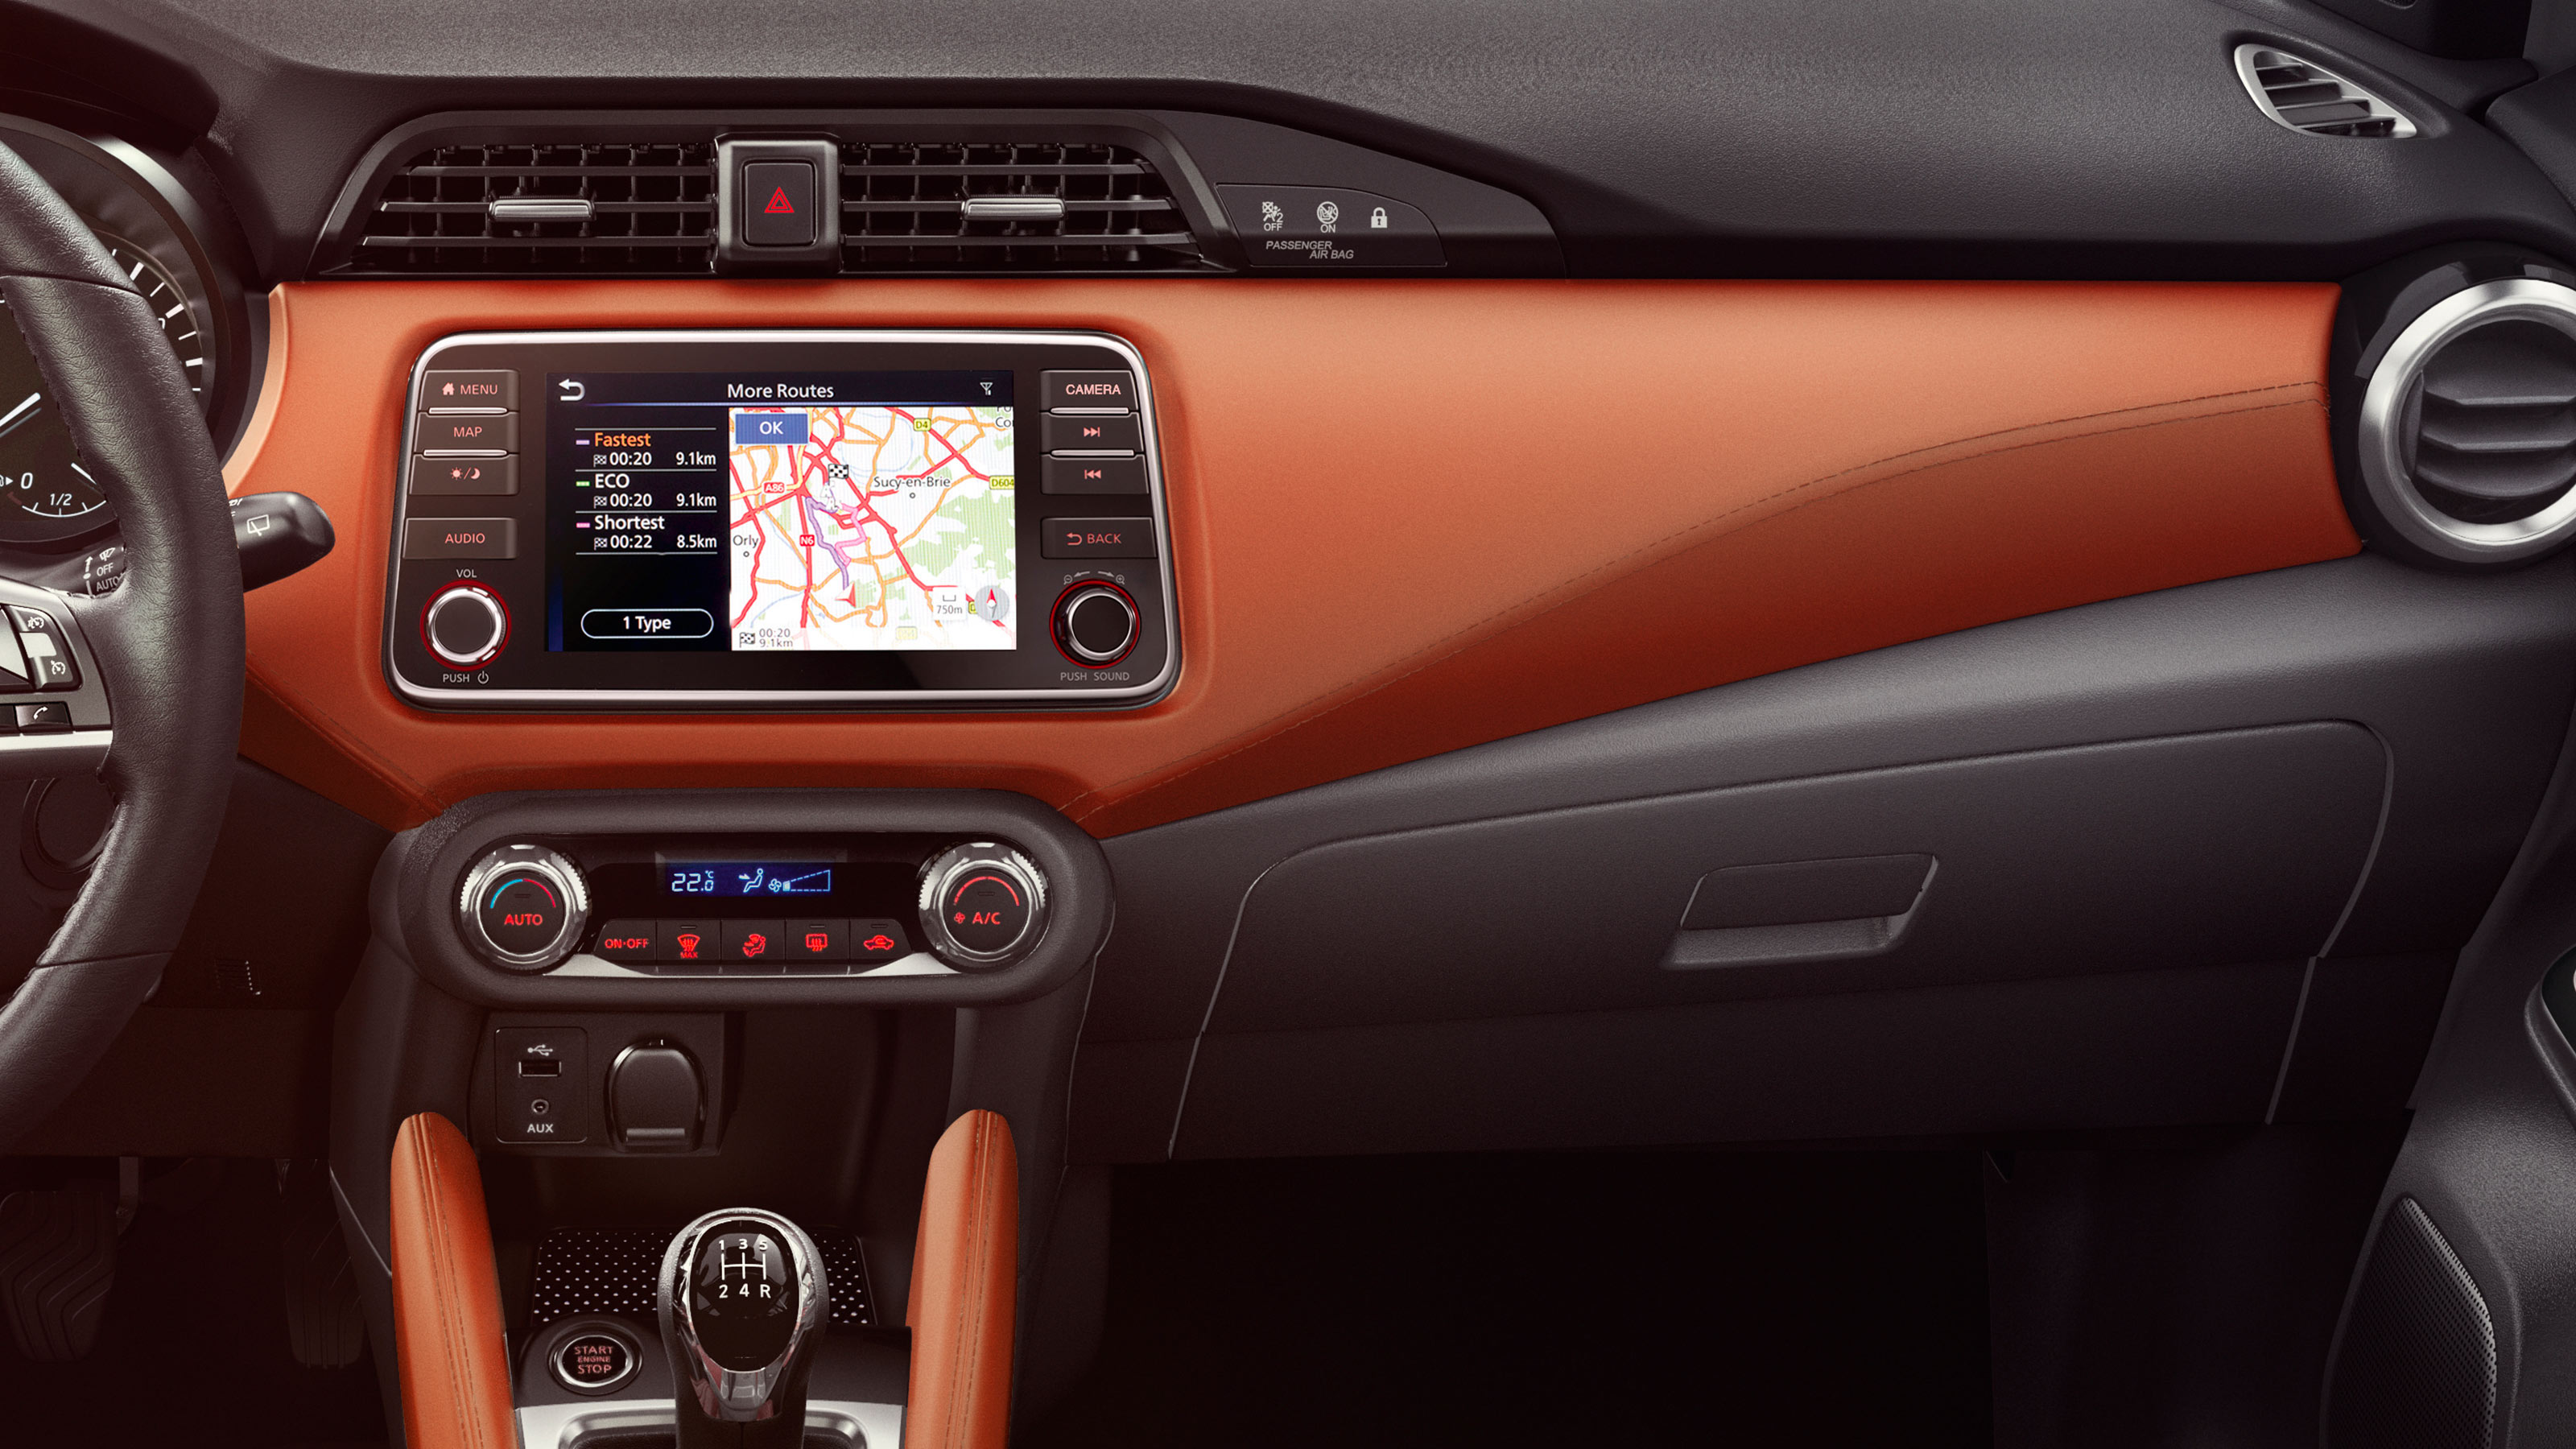 Nissan Micra Soft-Touch Dash Wrapping